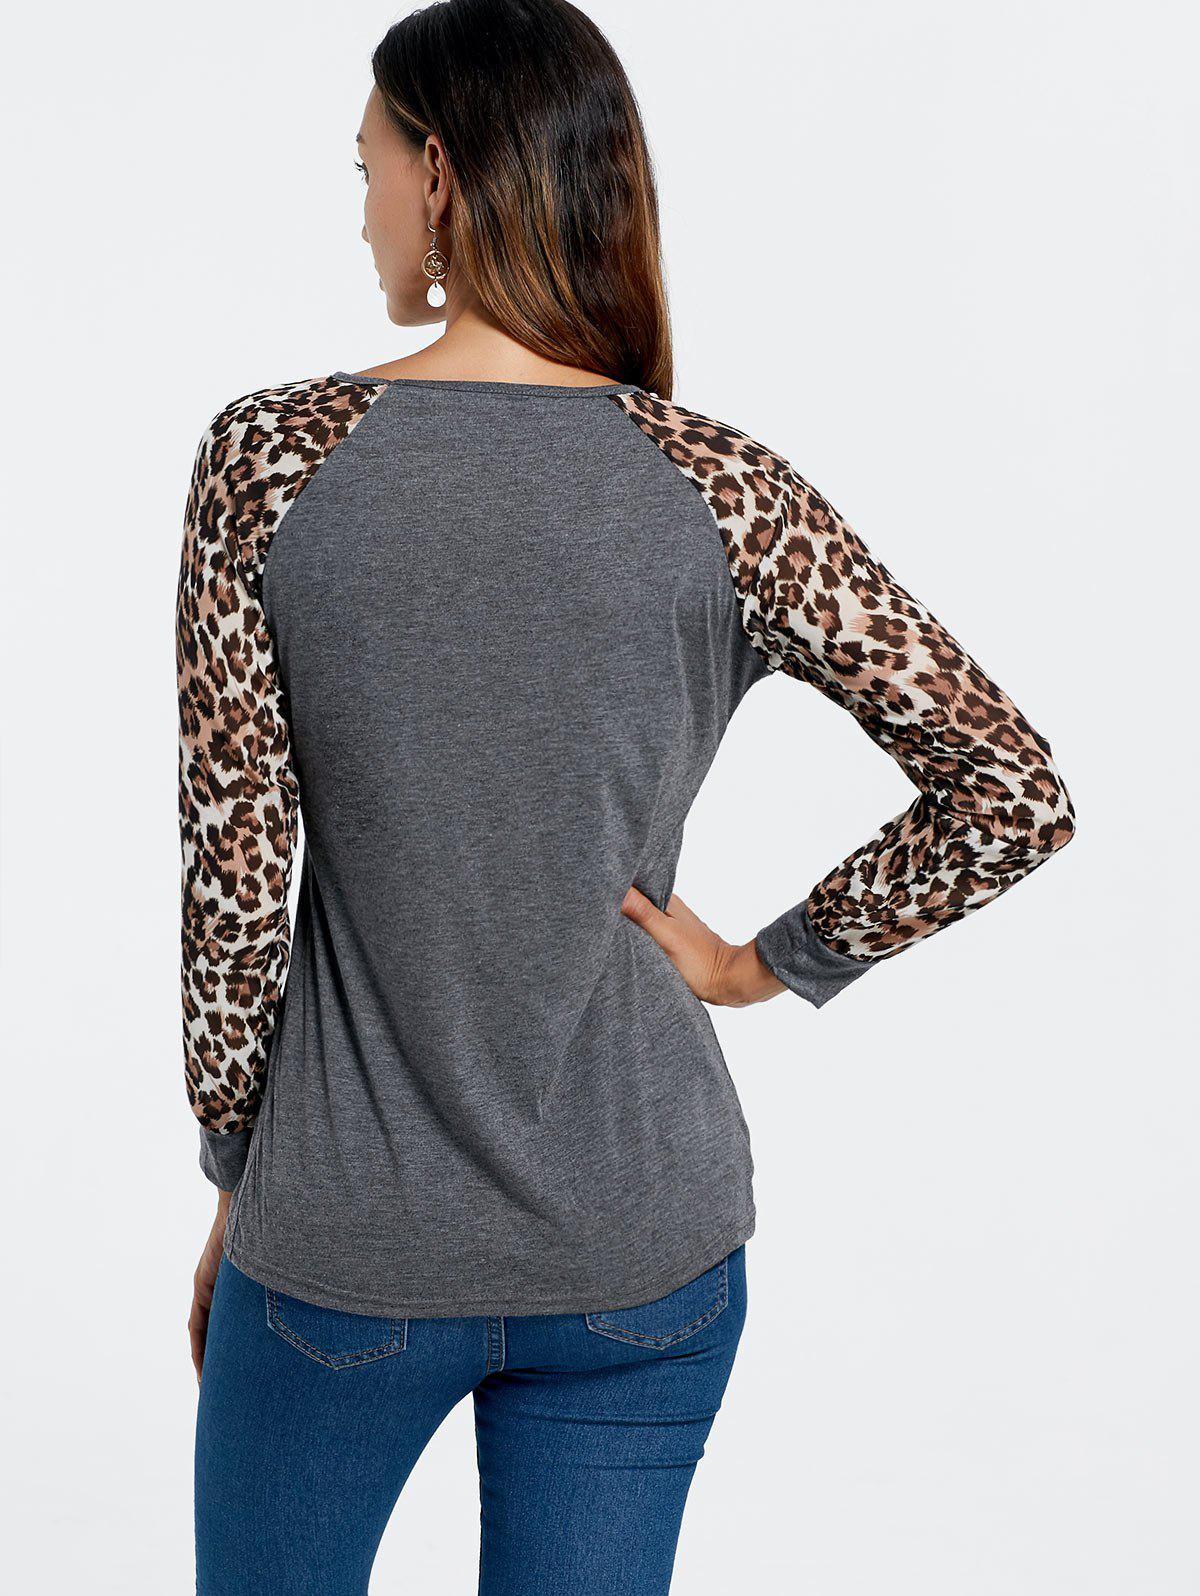 Trendy Leopard Print Long Sleeve Baseball T-Shirt For Women - DEEP GRAY S